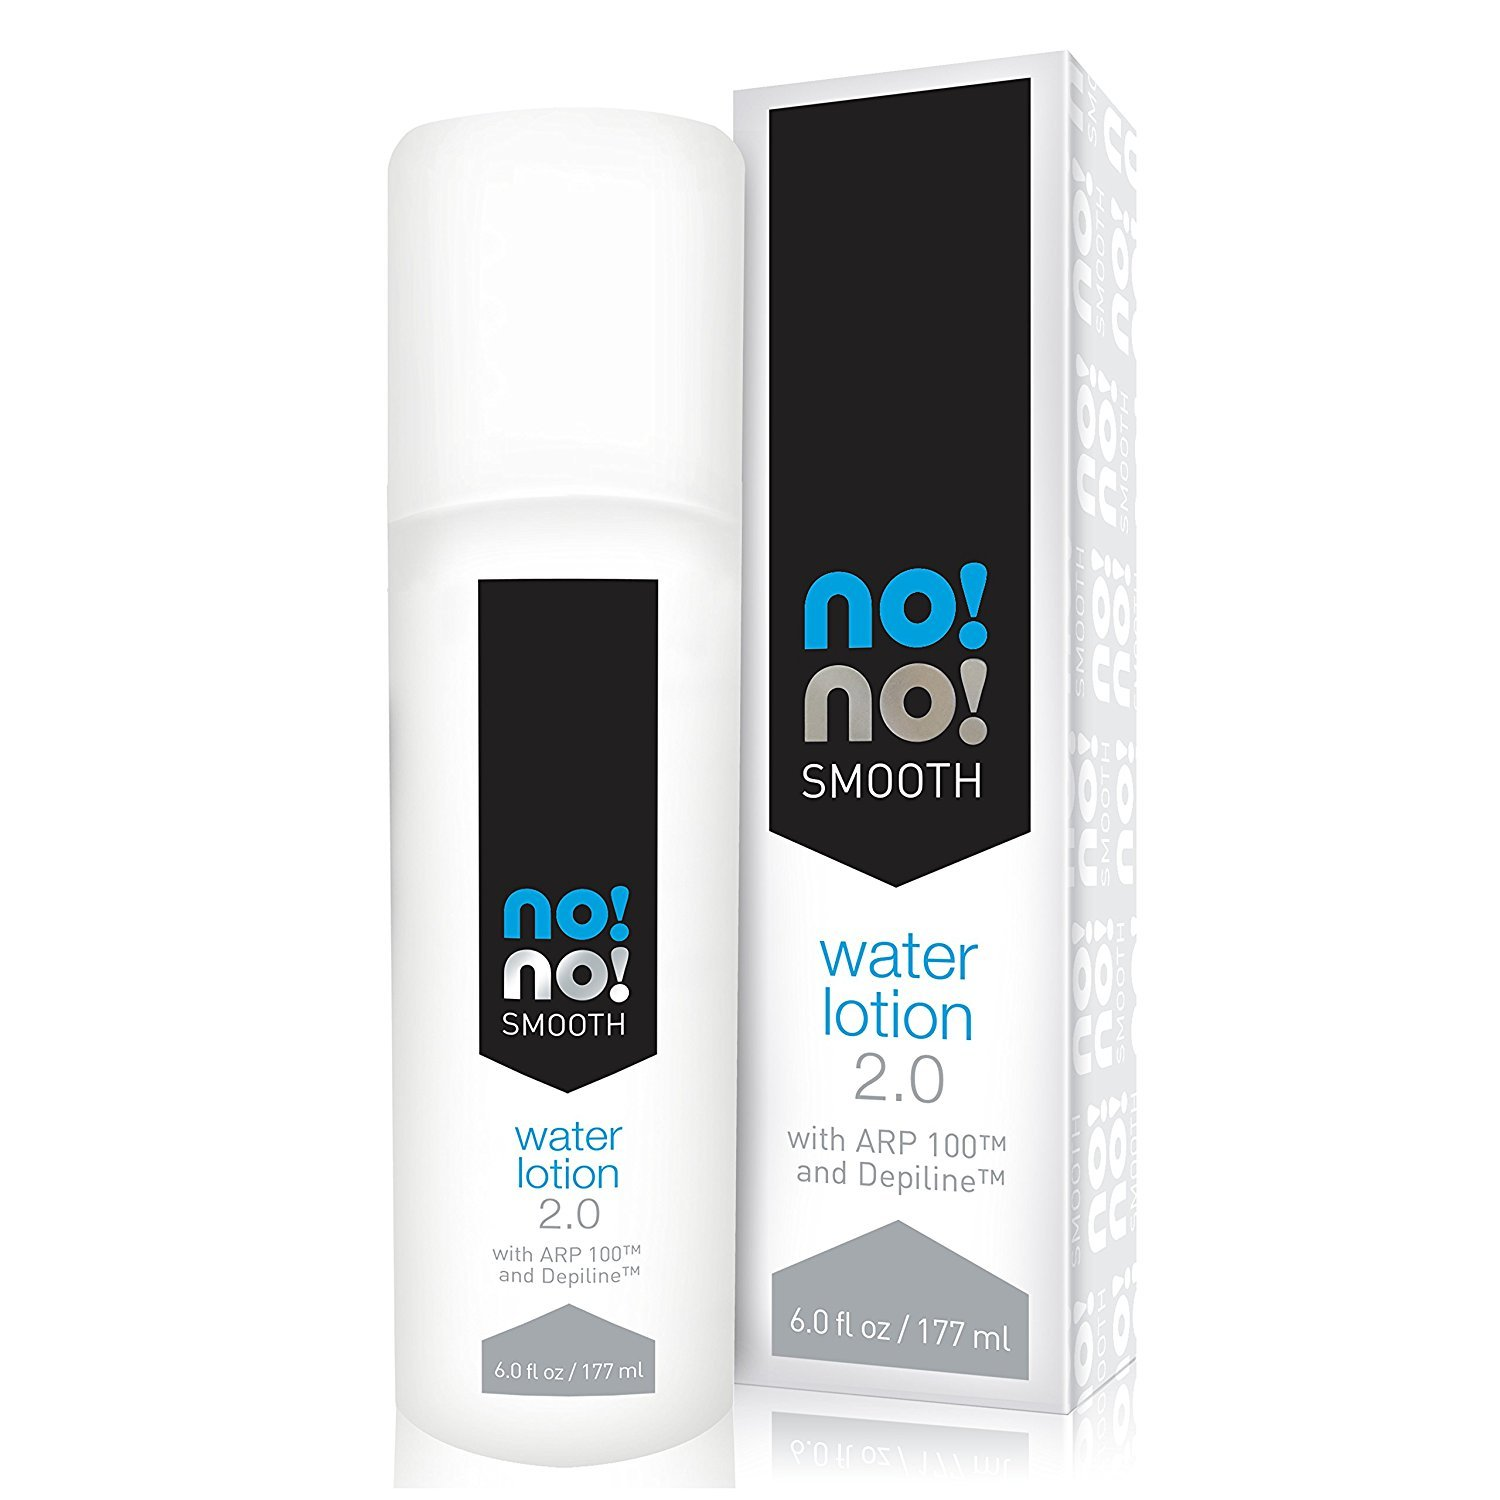 no!no! Smooth 2.0 Hair Regrowth-Prohibiting Water Lotion … ICTV Brands Inc. NNT-S6WL